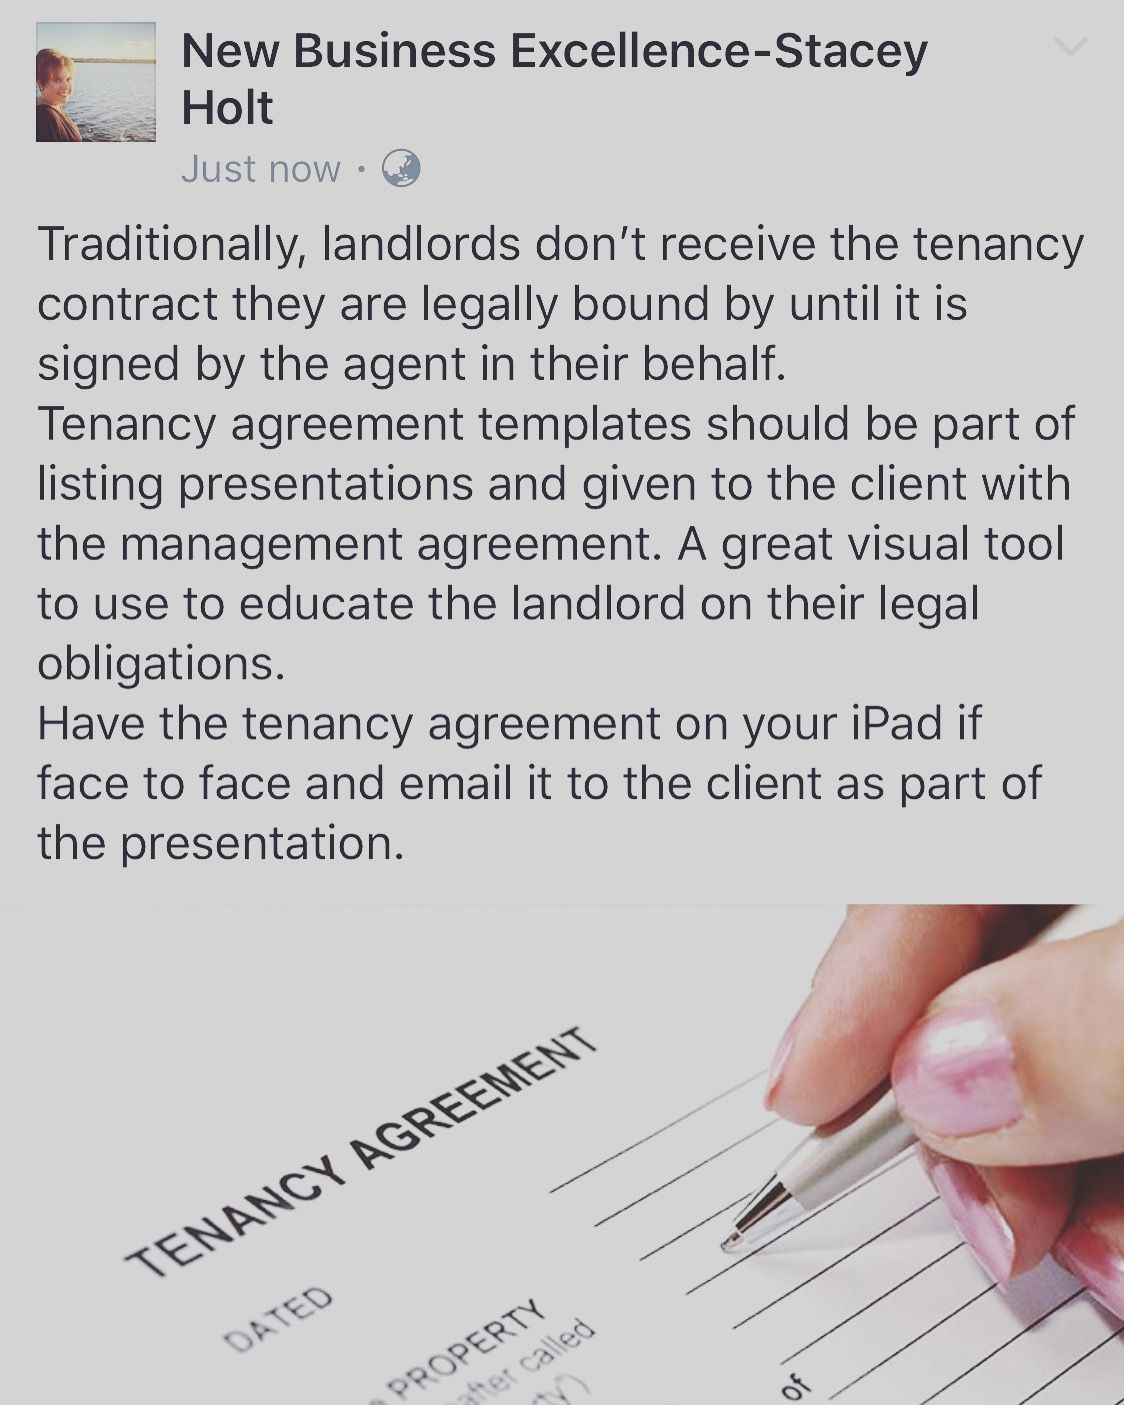 Traditionally Landlords DonT Receive The Tenancy Contract They